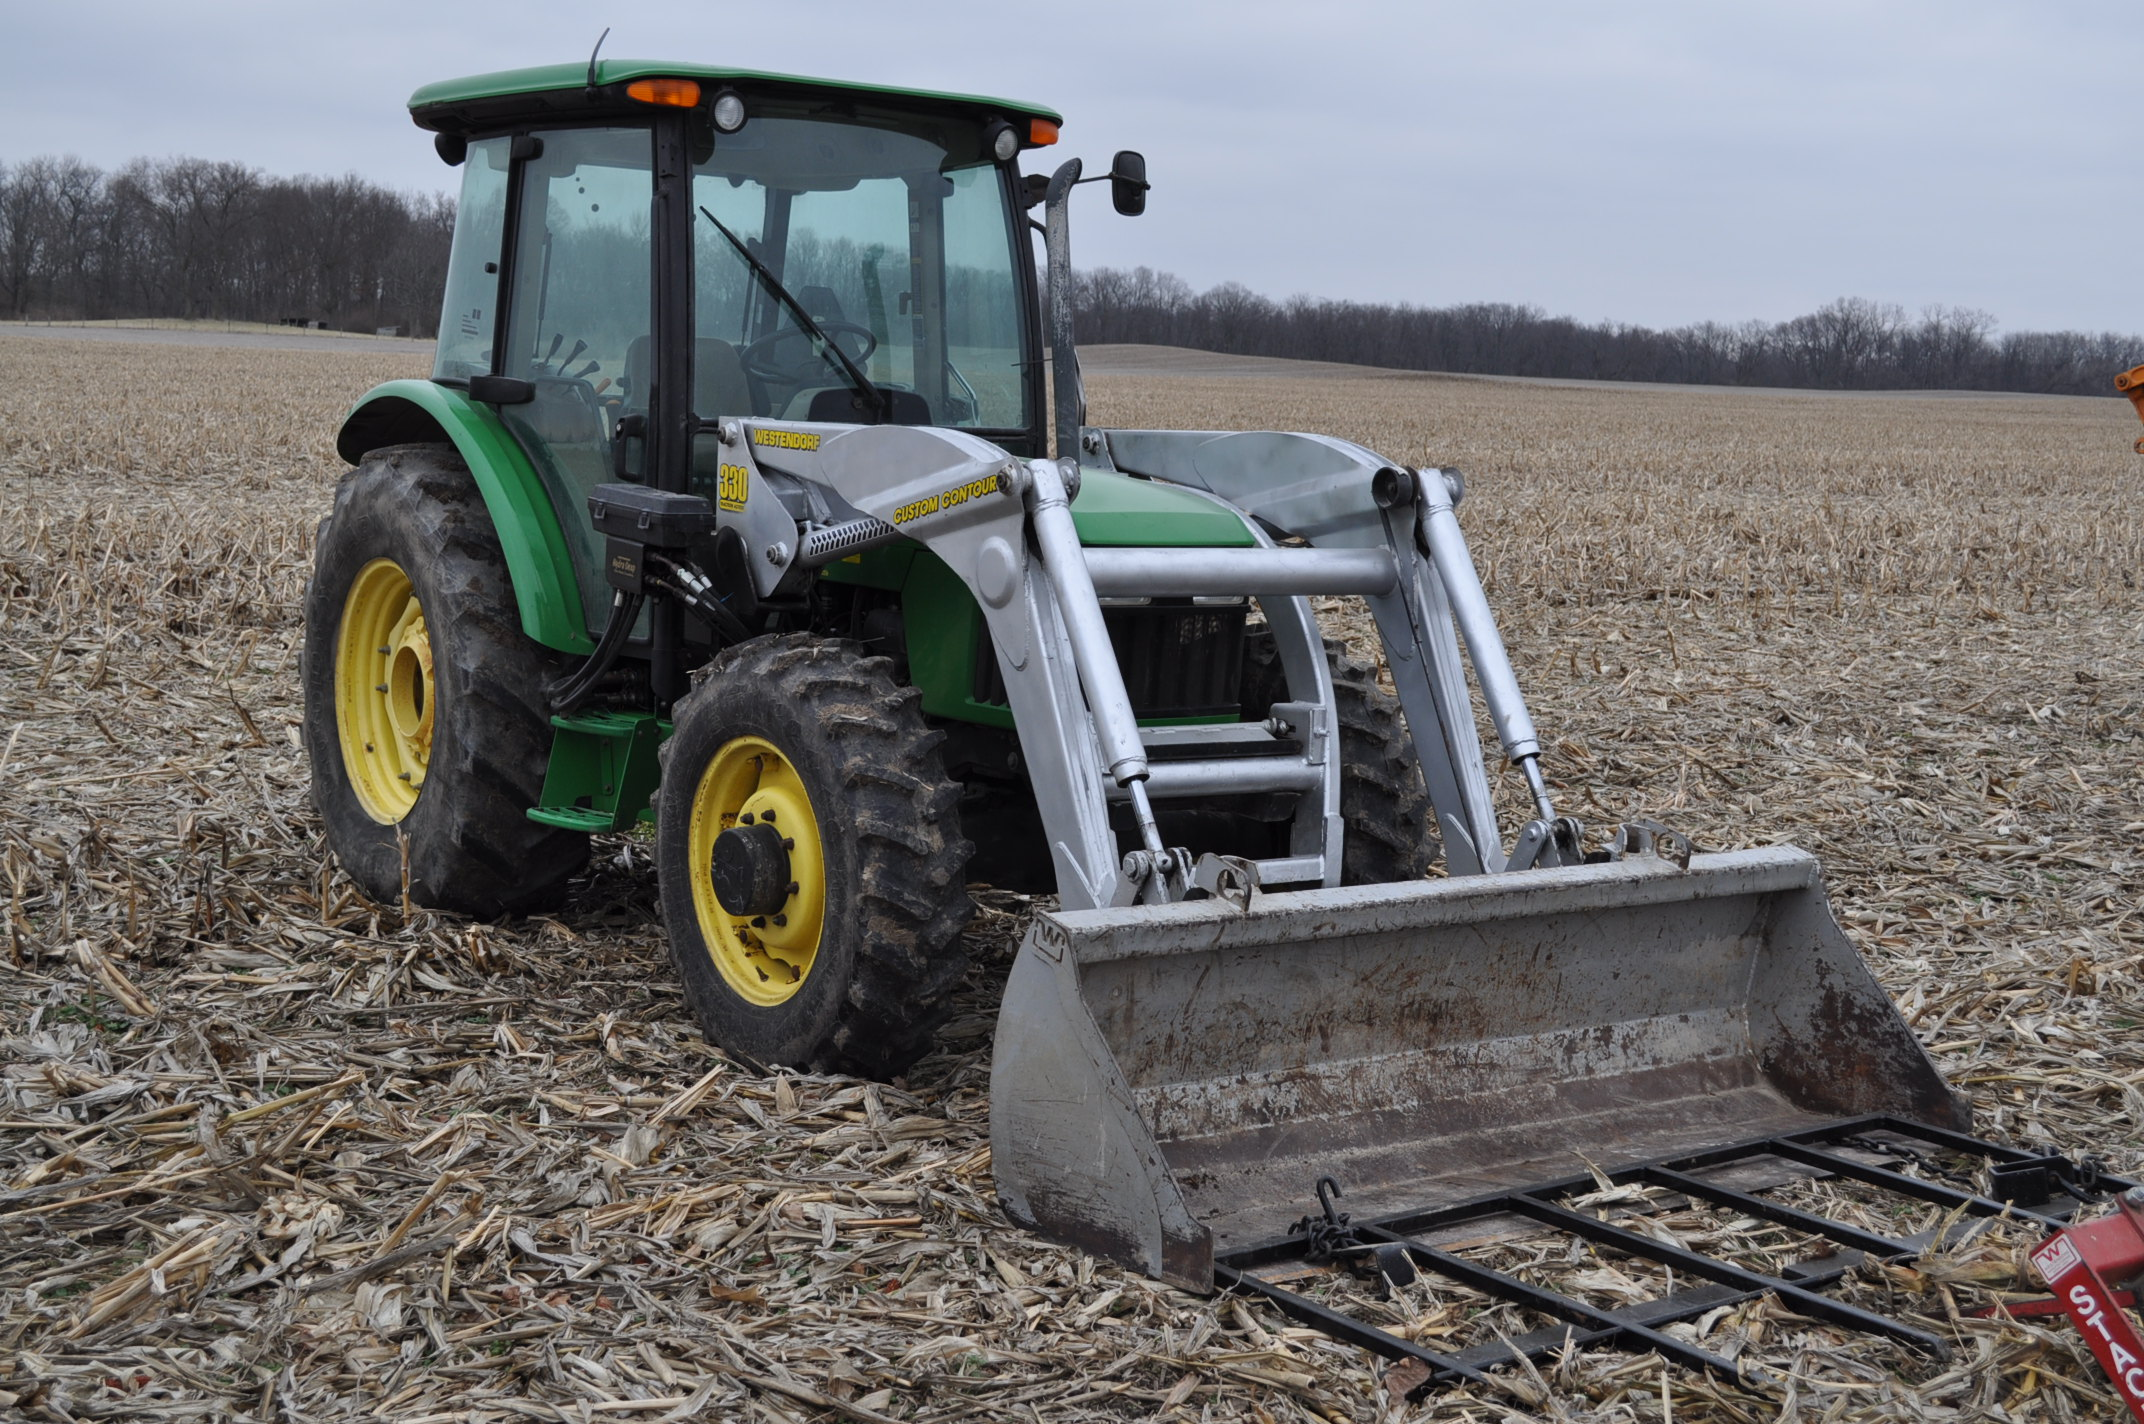 John Deere 5520 utility tractor, MFWD, 18.4 R 30 rear, 12.4-24 front, rear wheel wts, 2 hyd remotes, - Image 4 of 26